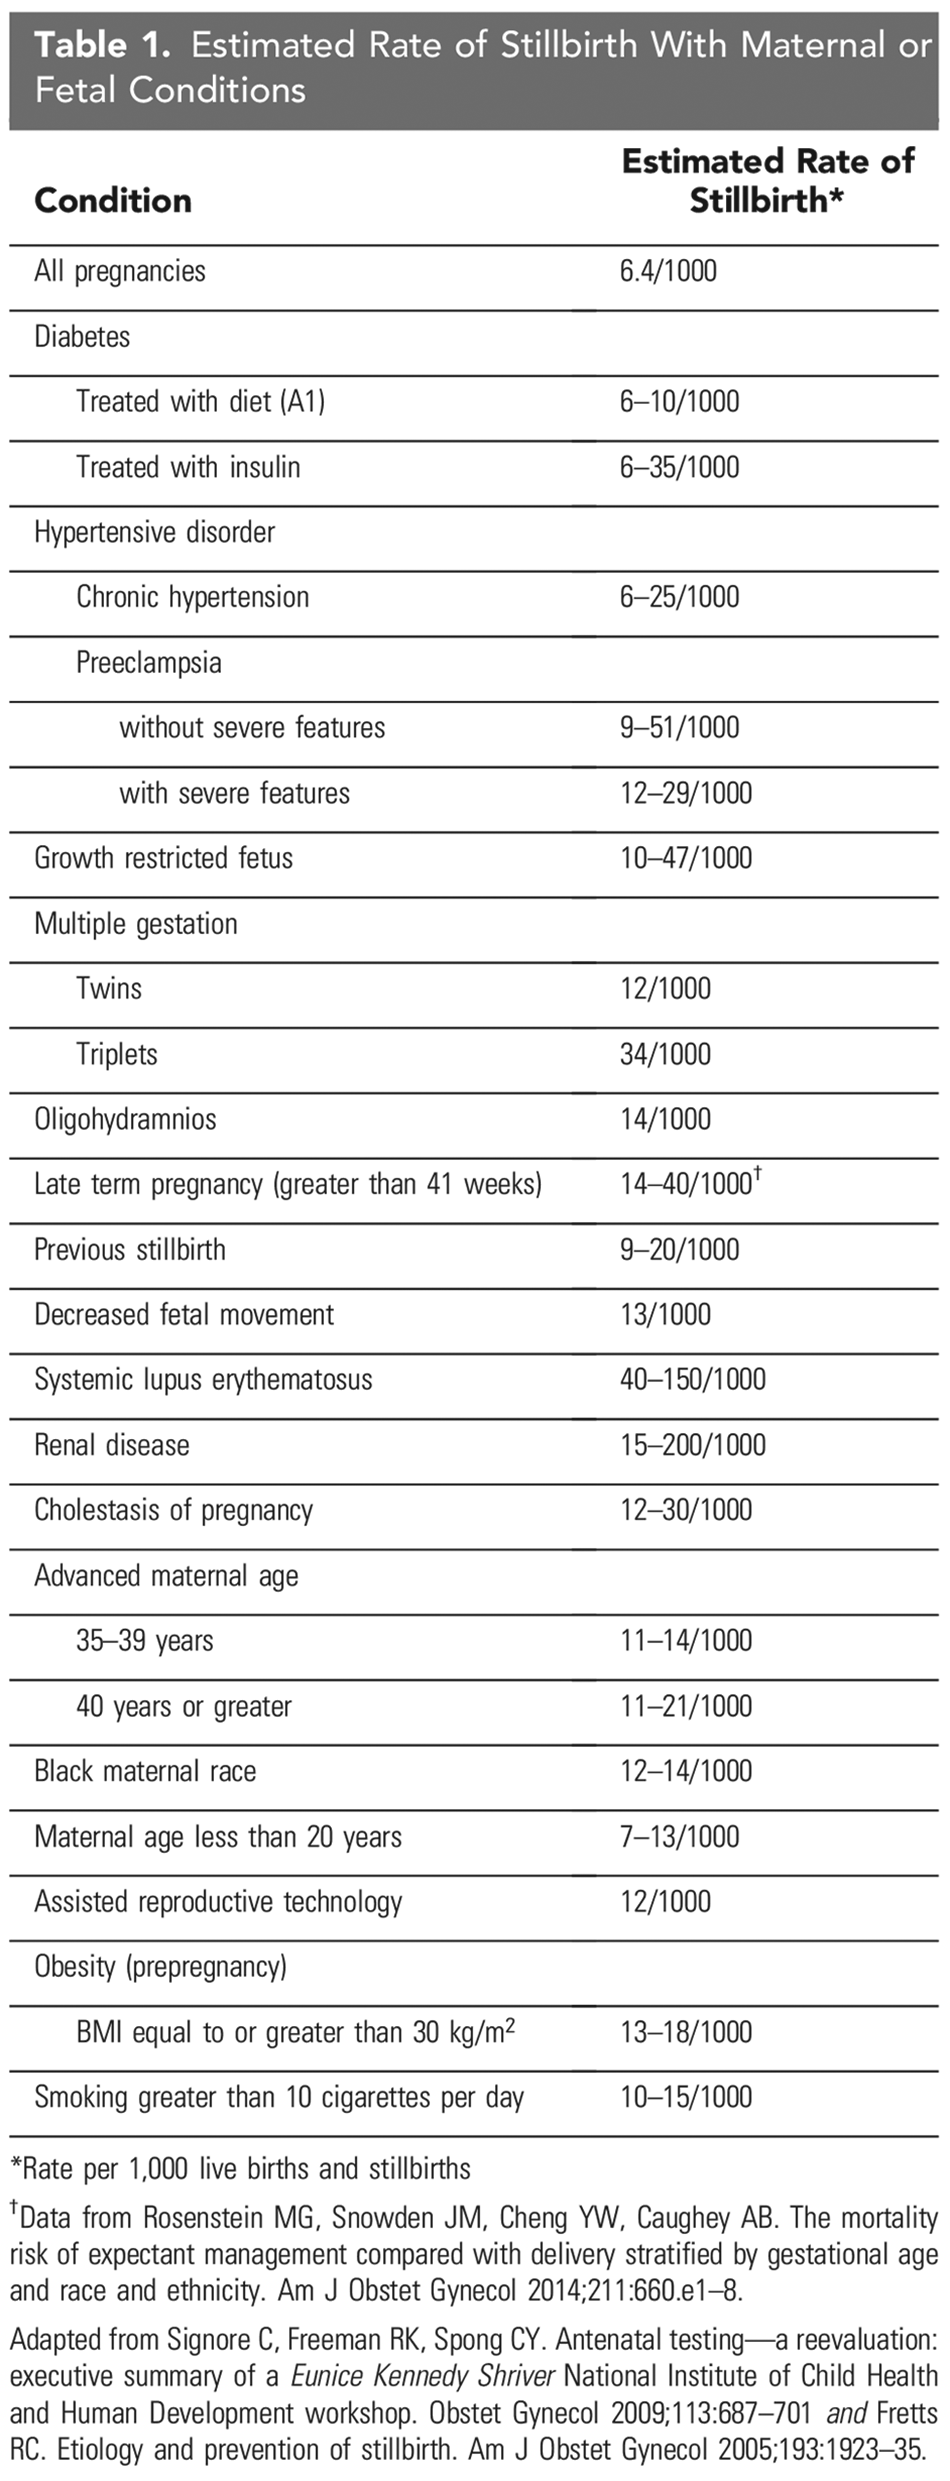 Table 1. Estimated Rate of Stillbirth With Maternal or Fetal Conditions